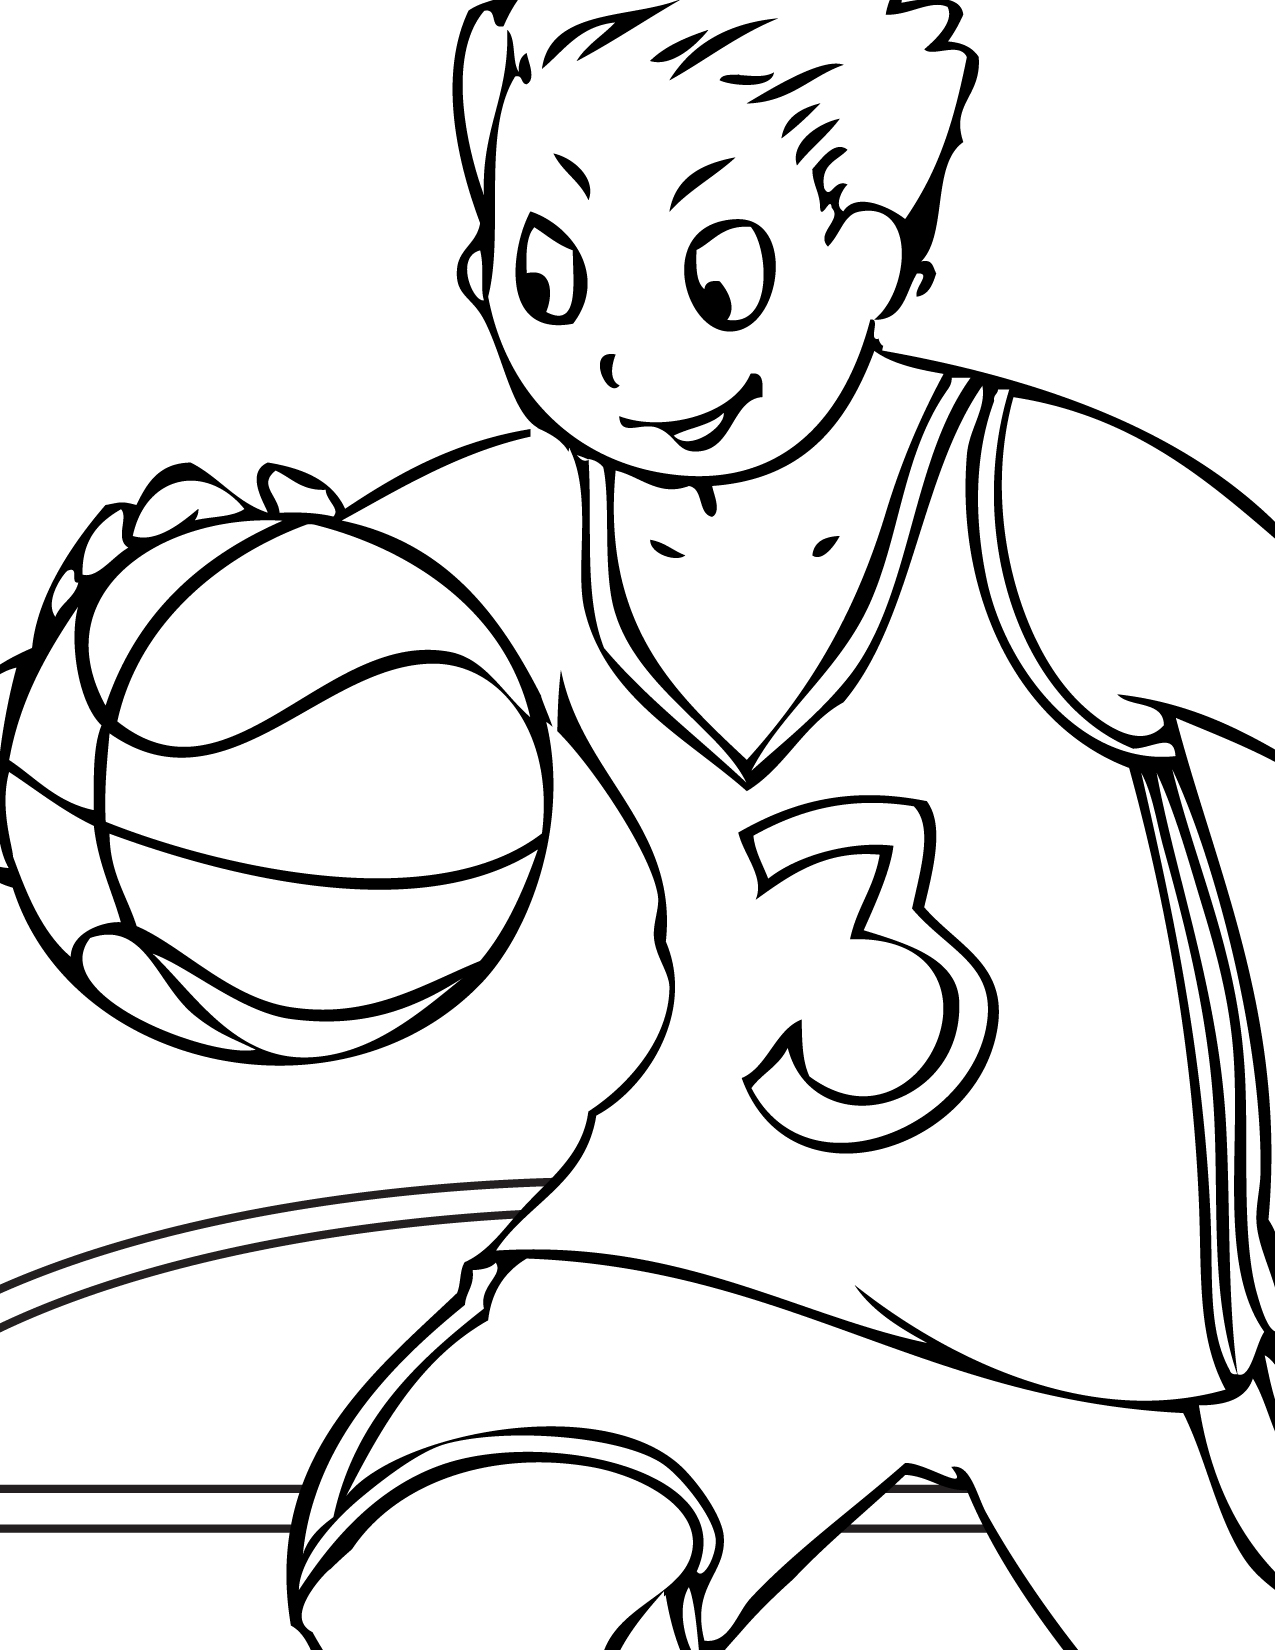 sports coloring pages for kid - photo#6